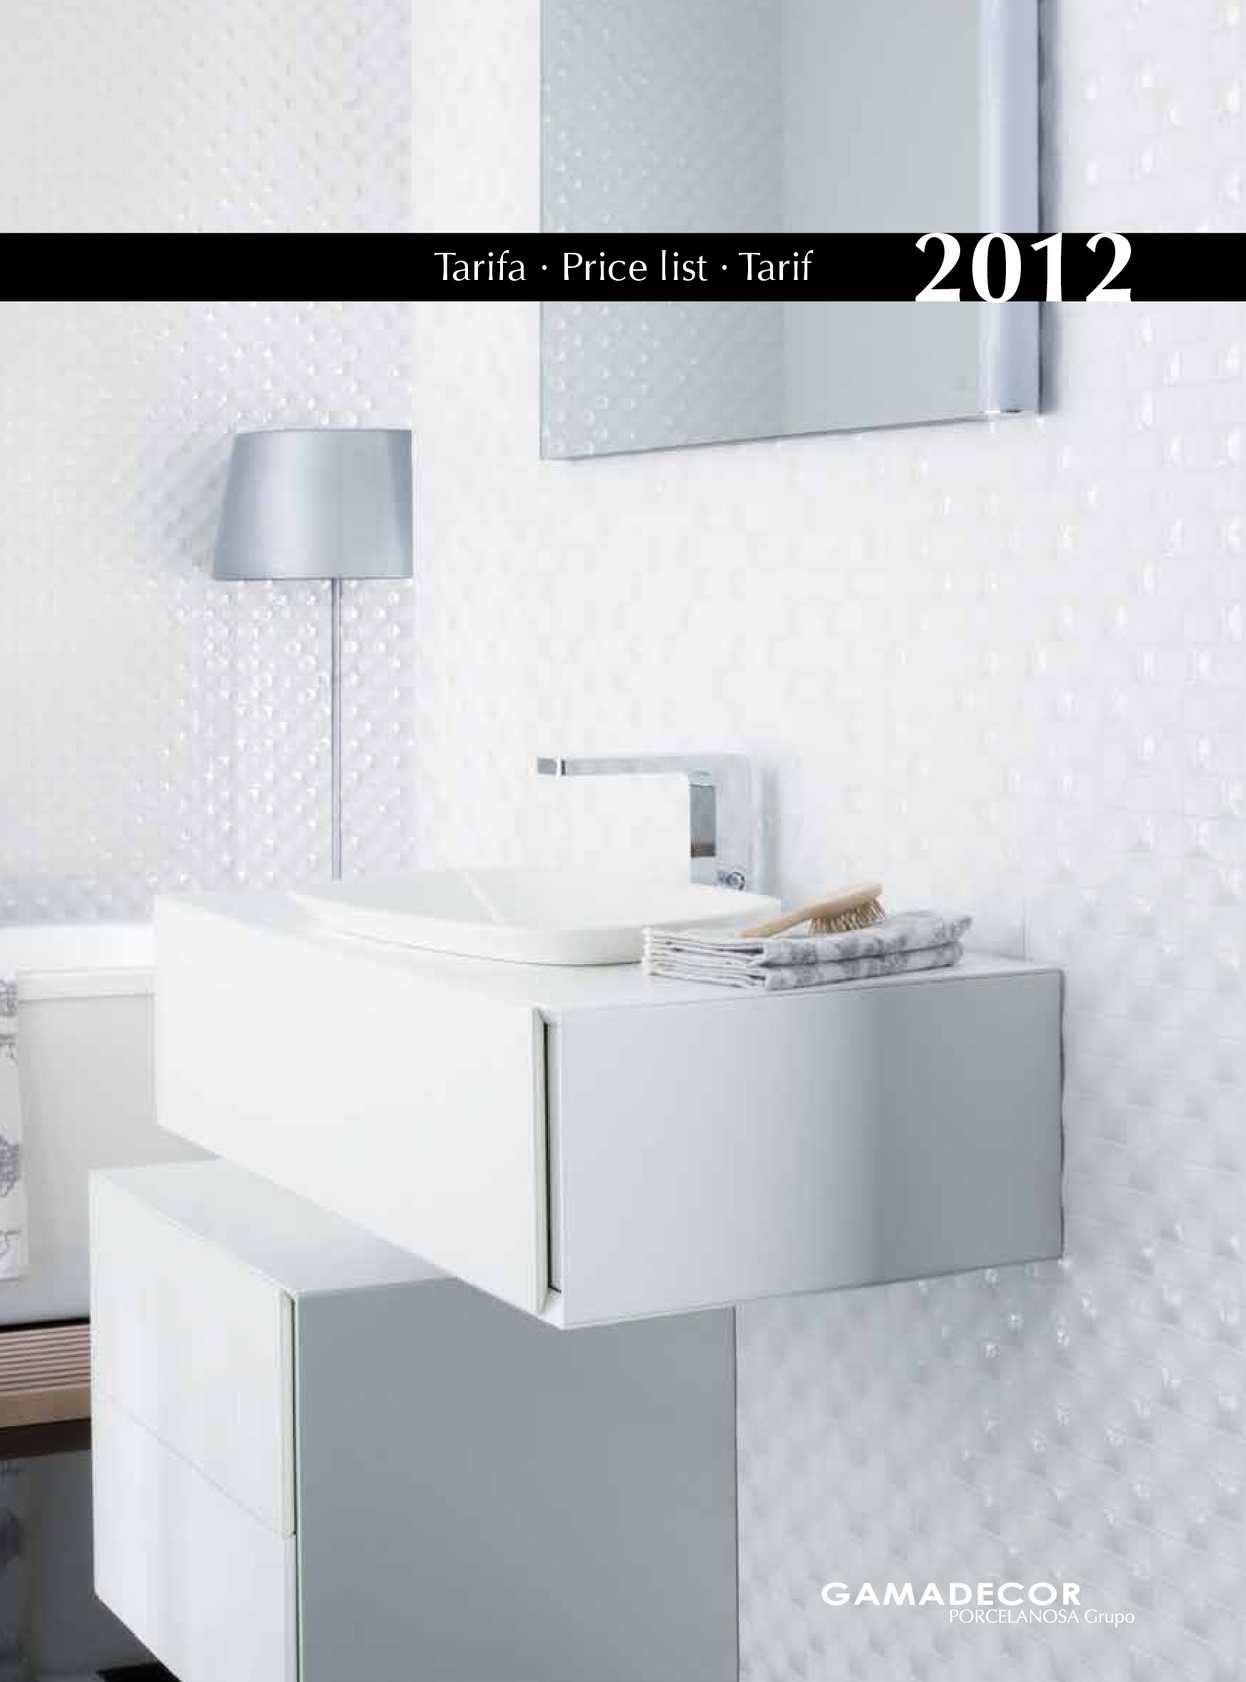 Gama Decor Calaméo Gamadecor Baño